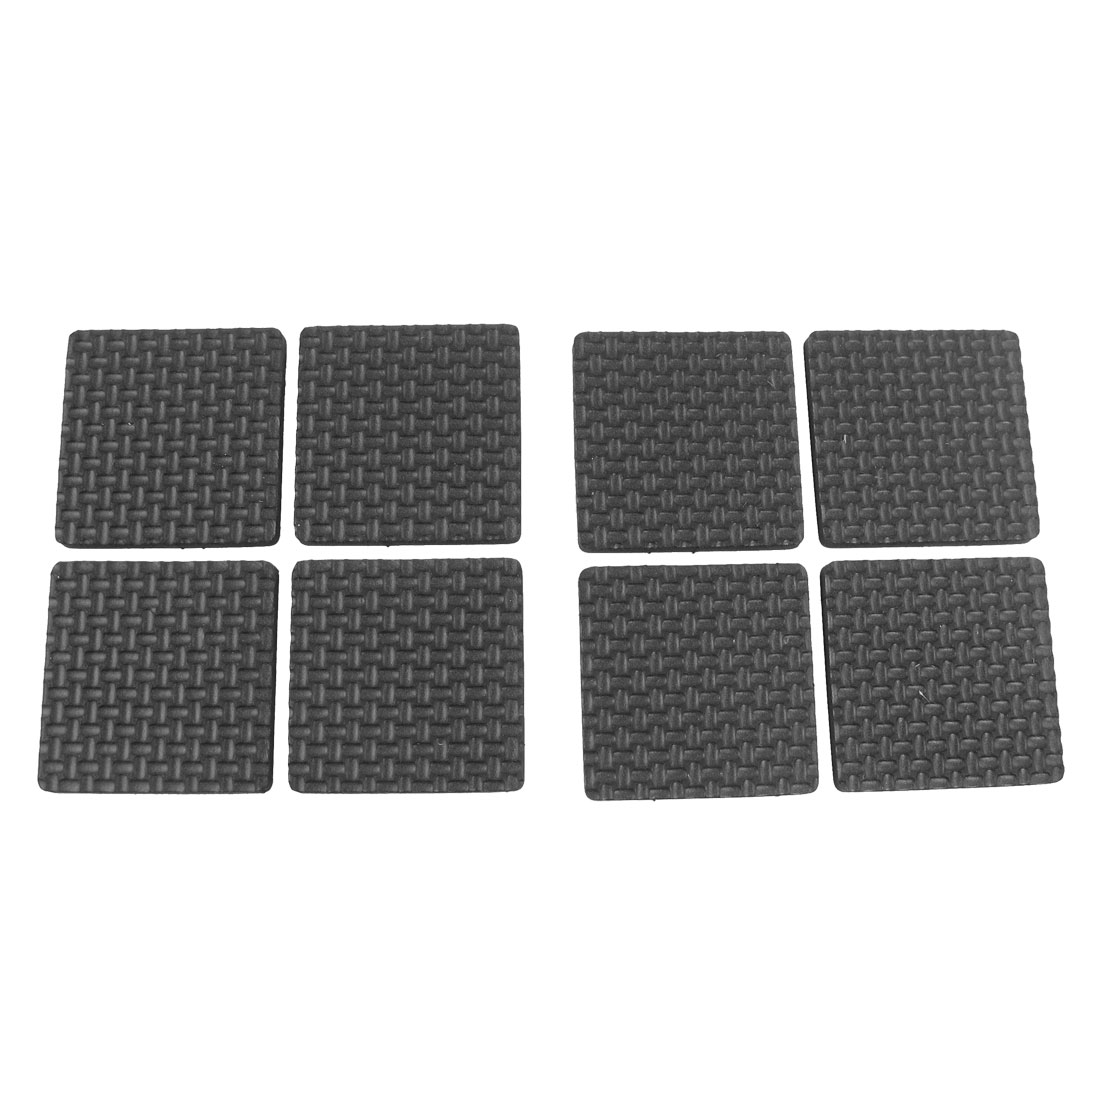 8 Pcs Self Adhesive Black Foam Table Chair Leg Pad Protector 38mm x 38mm